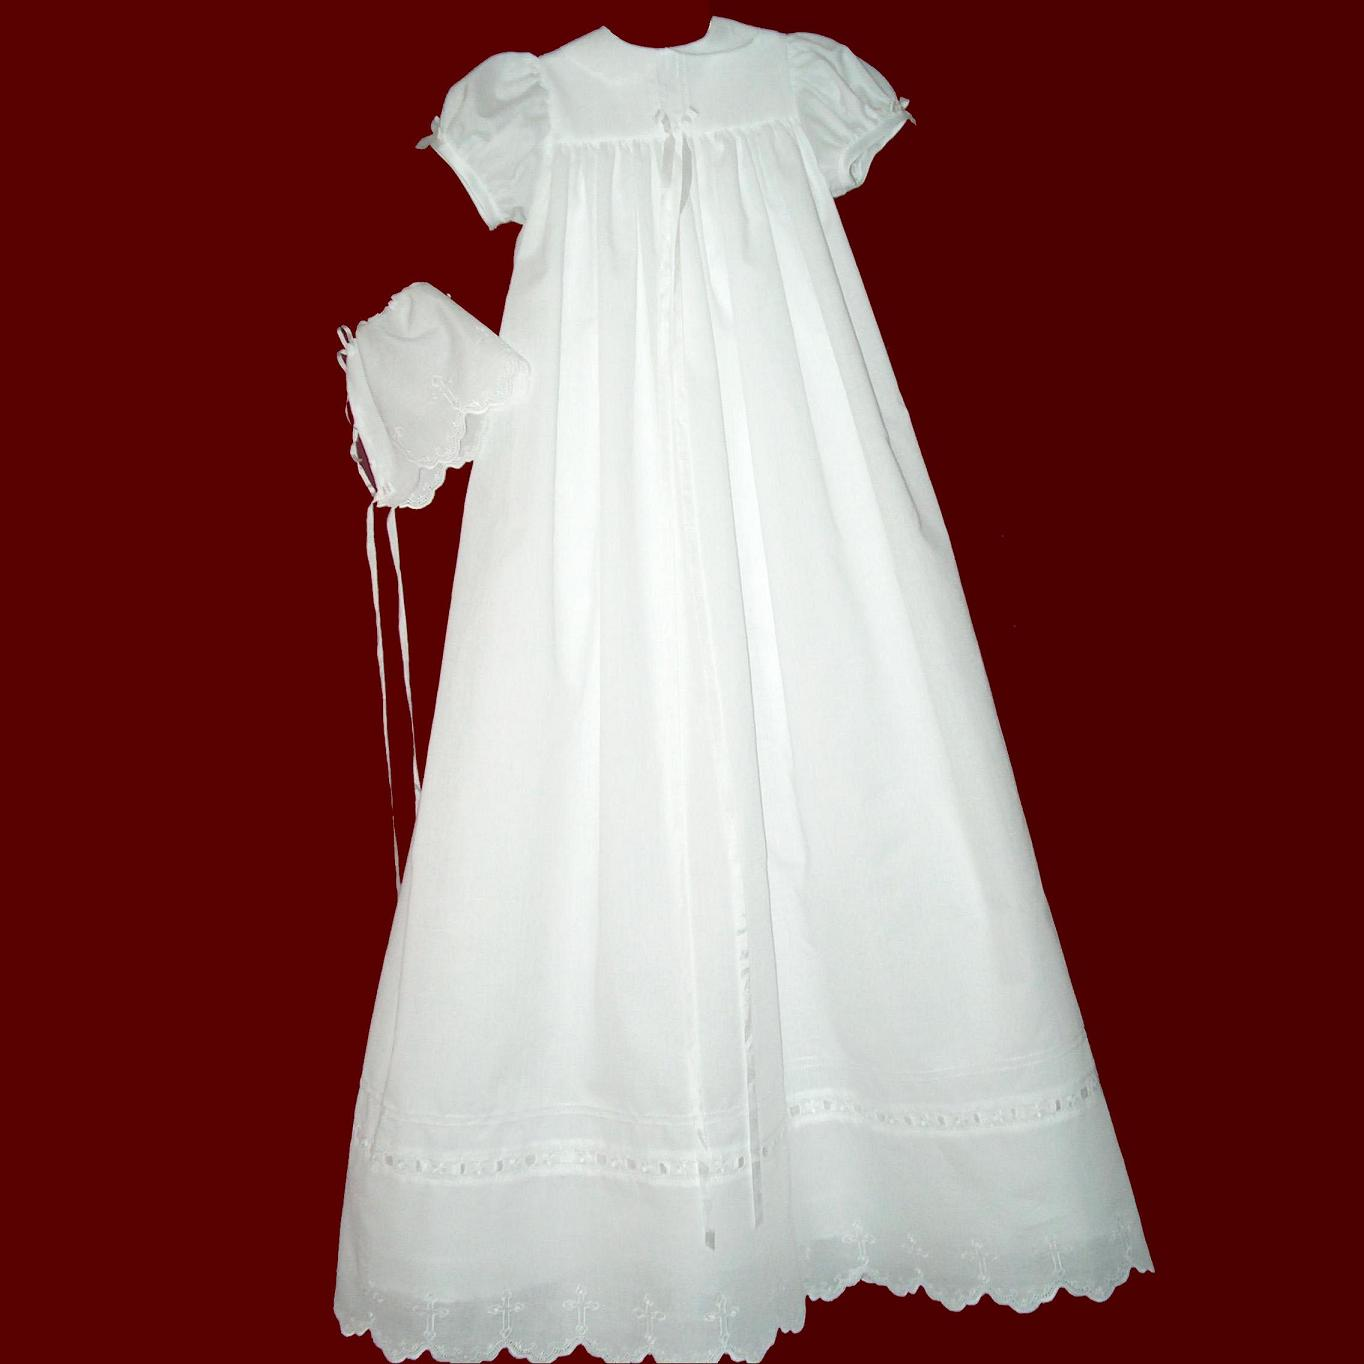 Christening Gowns From Wedding Dresses: Christening Gown